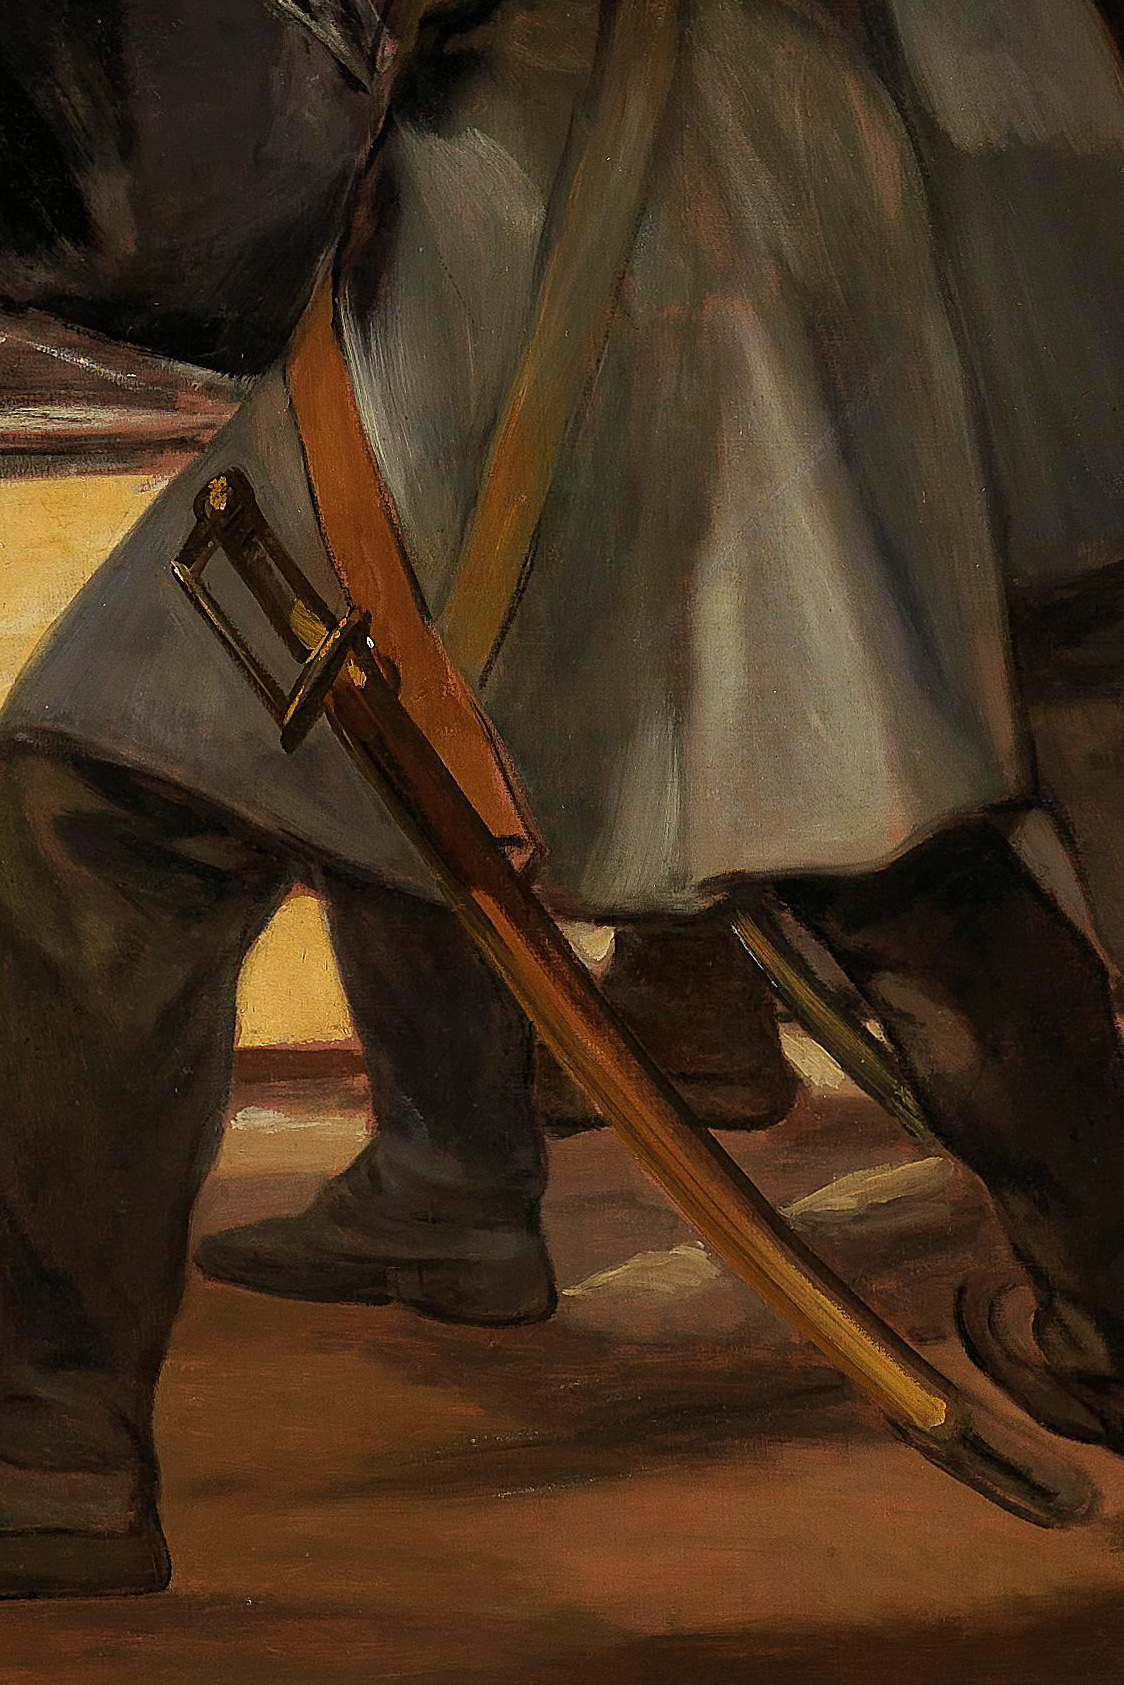 """How Goya's """"Third of May"""" Forever Changed the Way We Look at War - Artsy"""